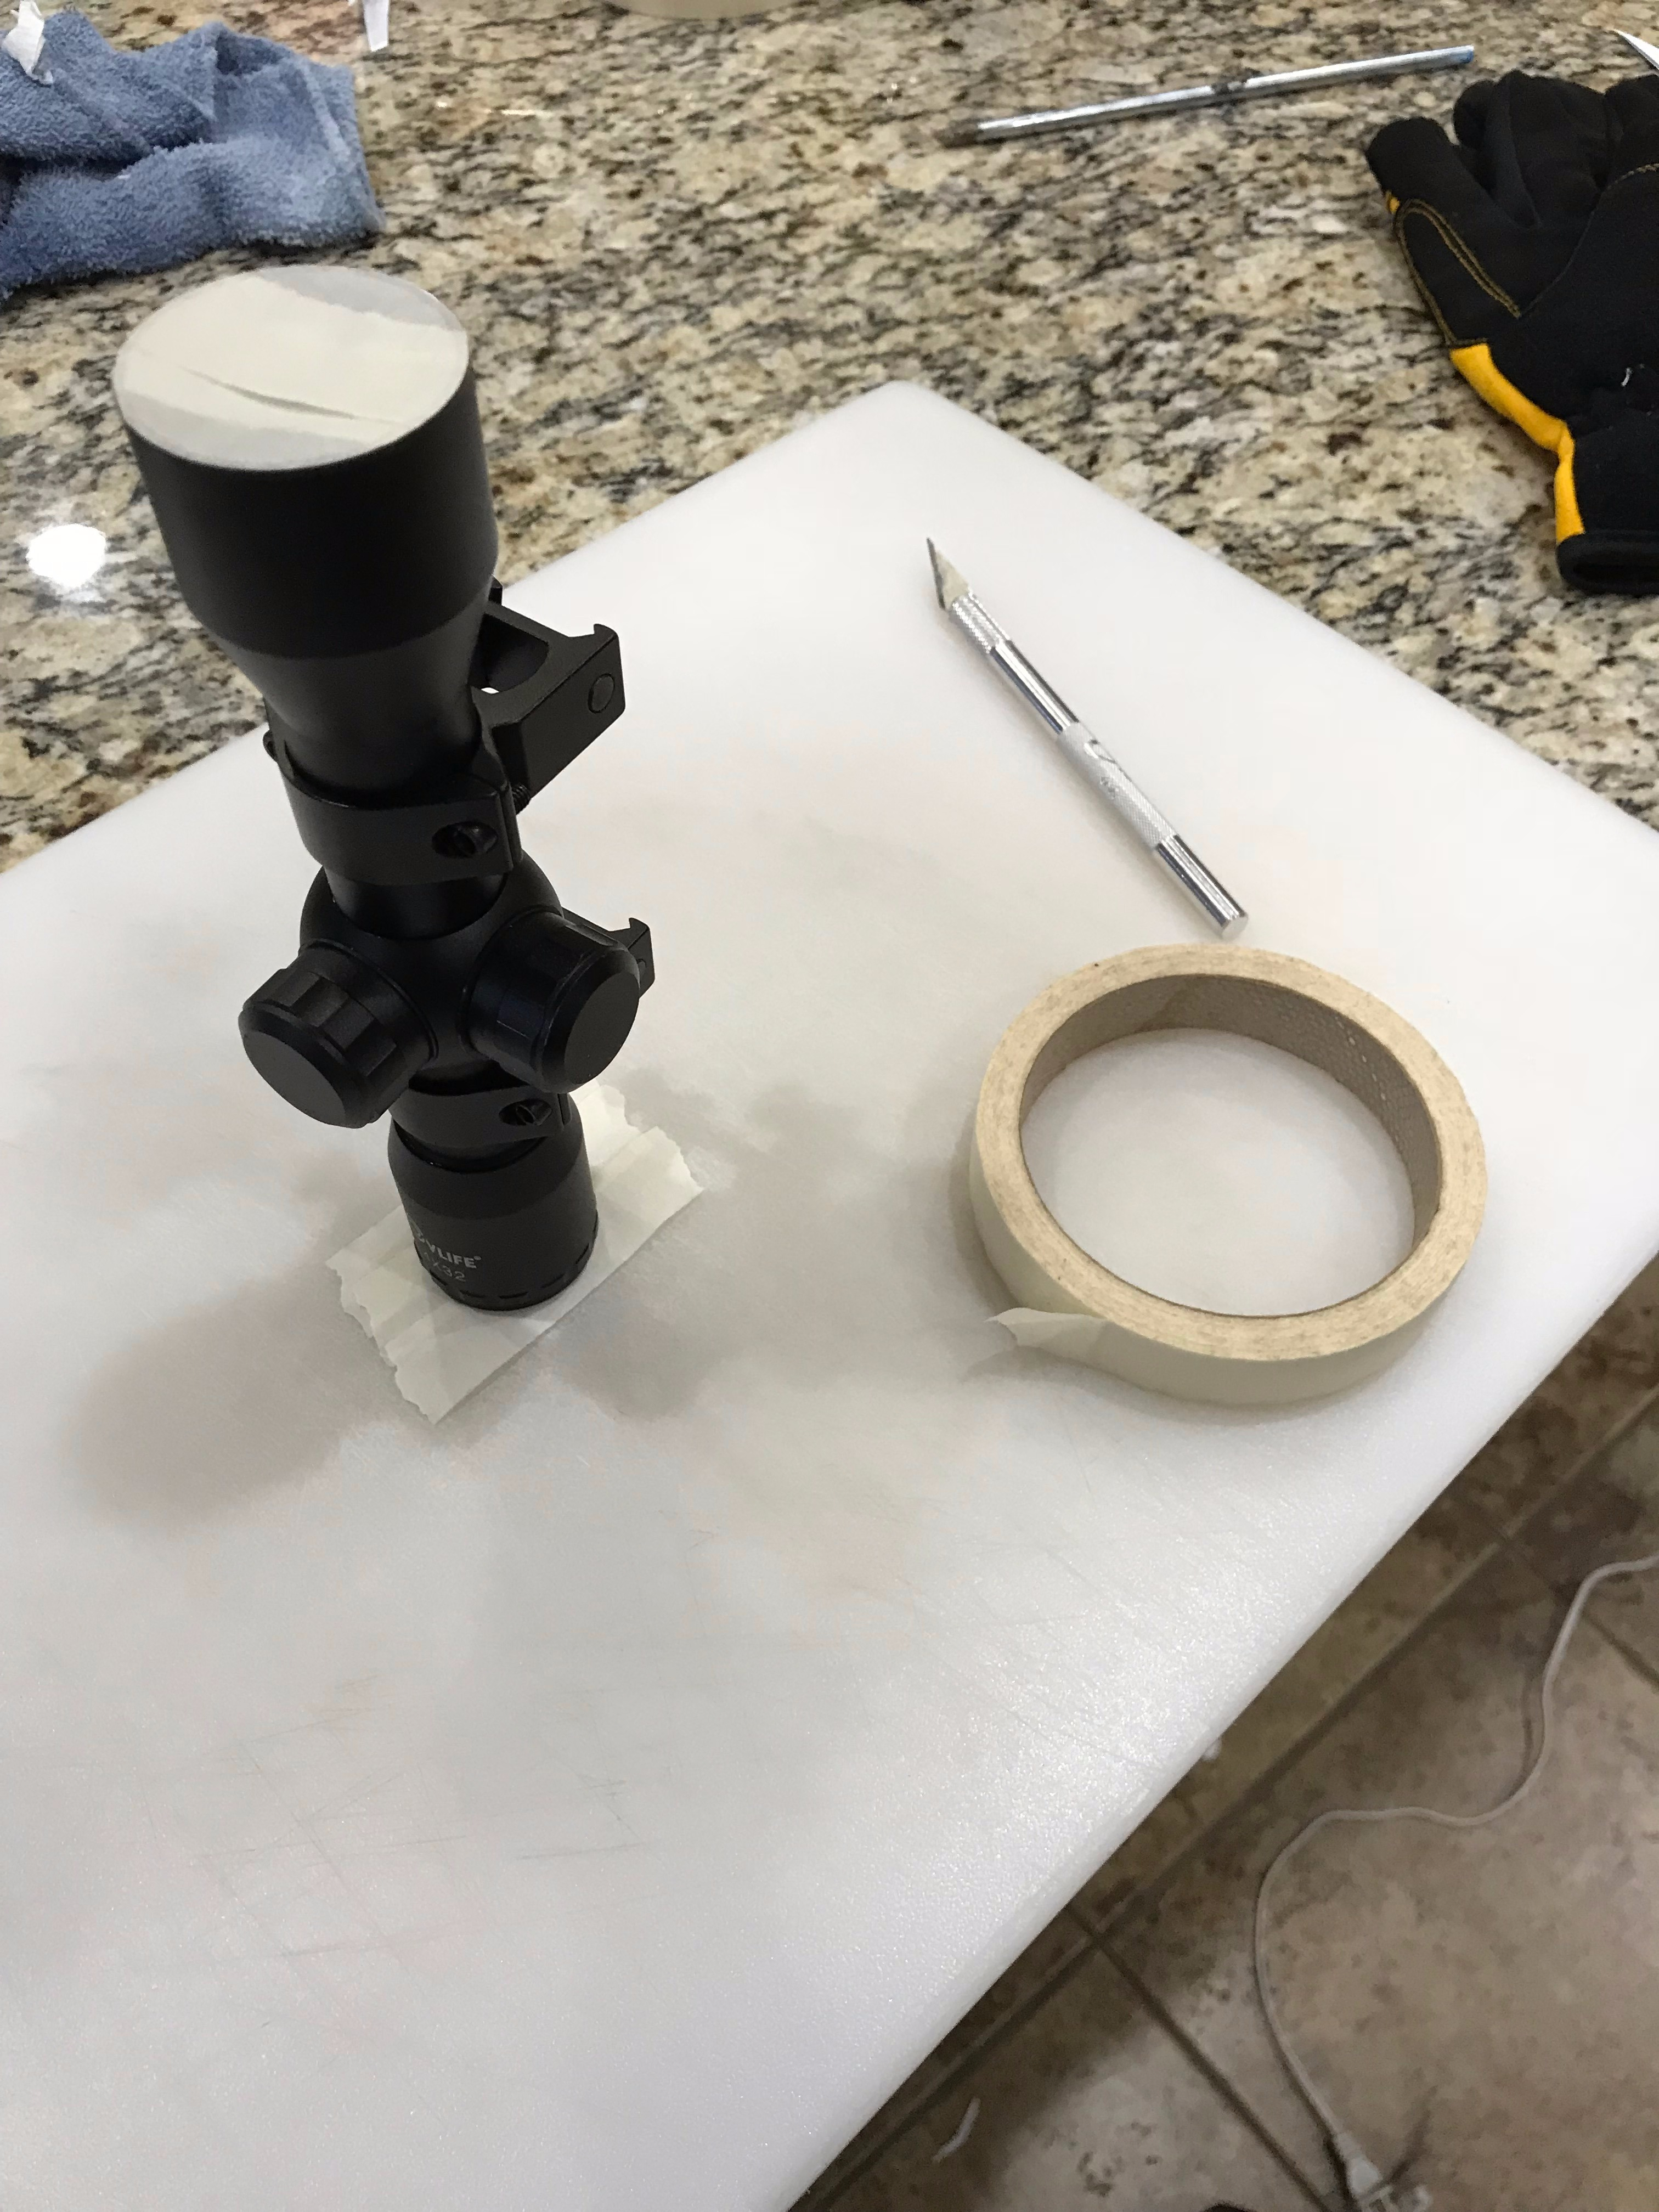 Picture of Preparing the Scope for Painting